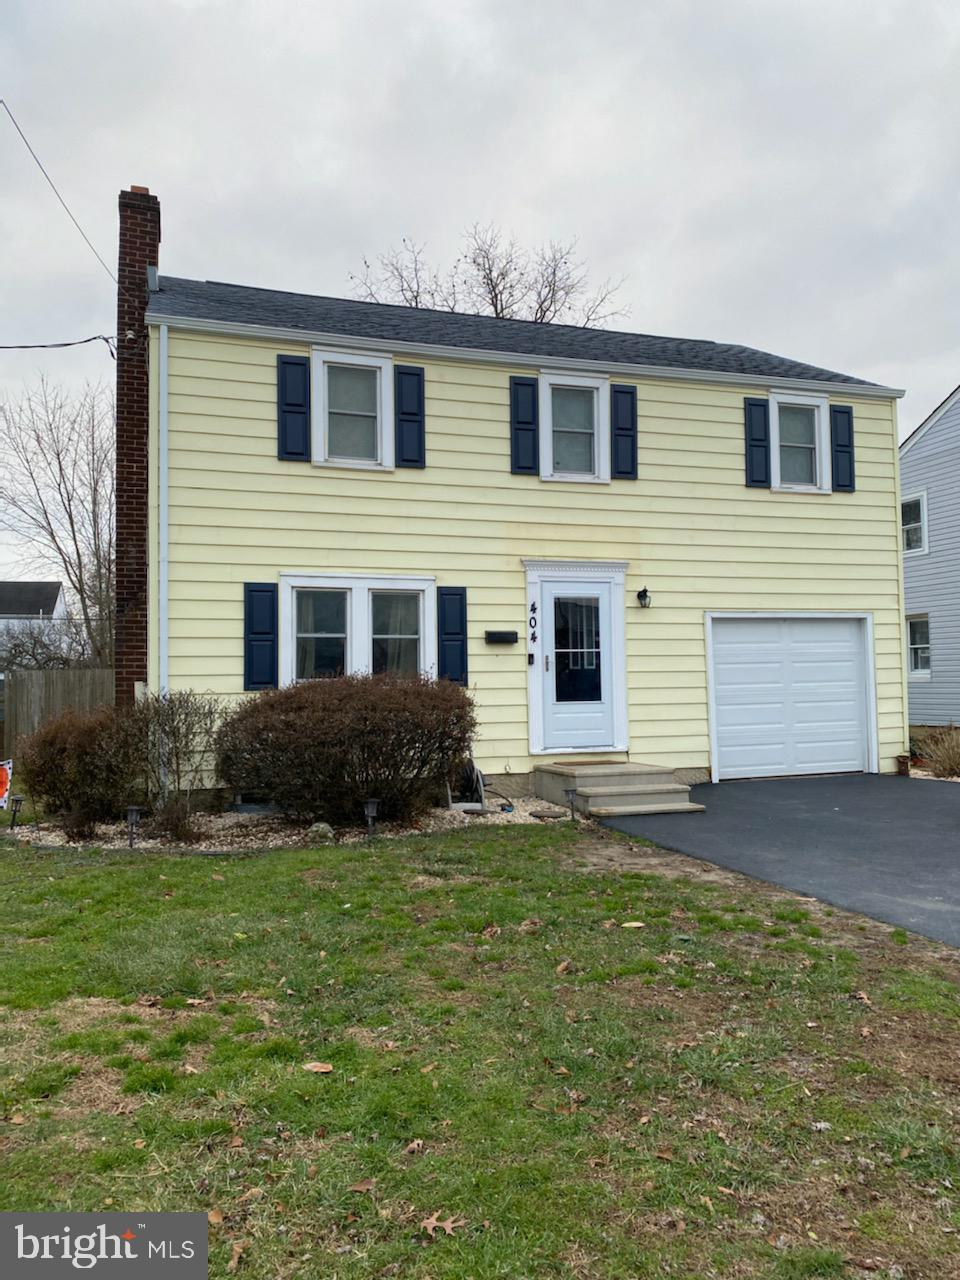 Offers due by 7pm, Sunday, January 17th.  Location, Location ! This 3 Bedroom 1 1/2 bath colonial is